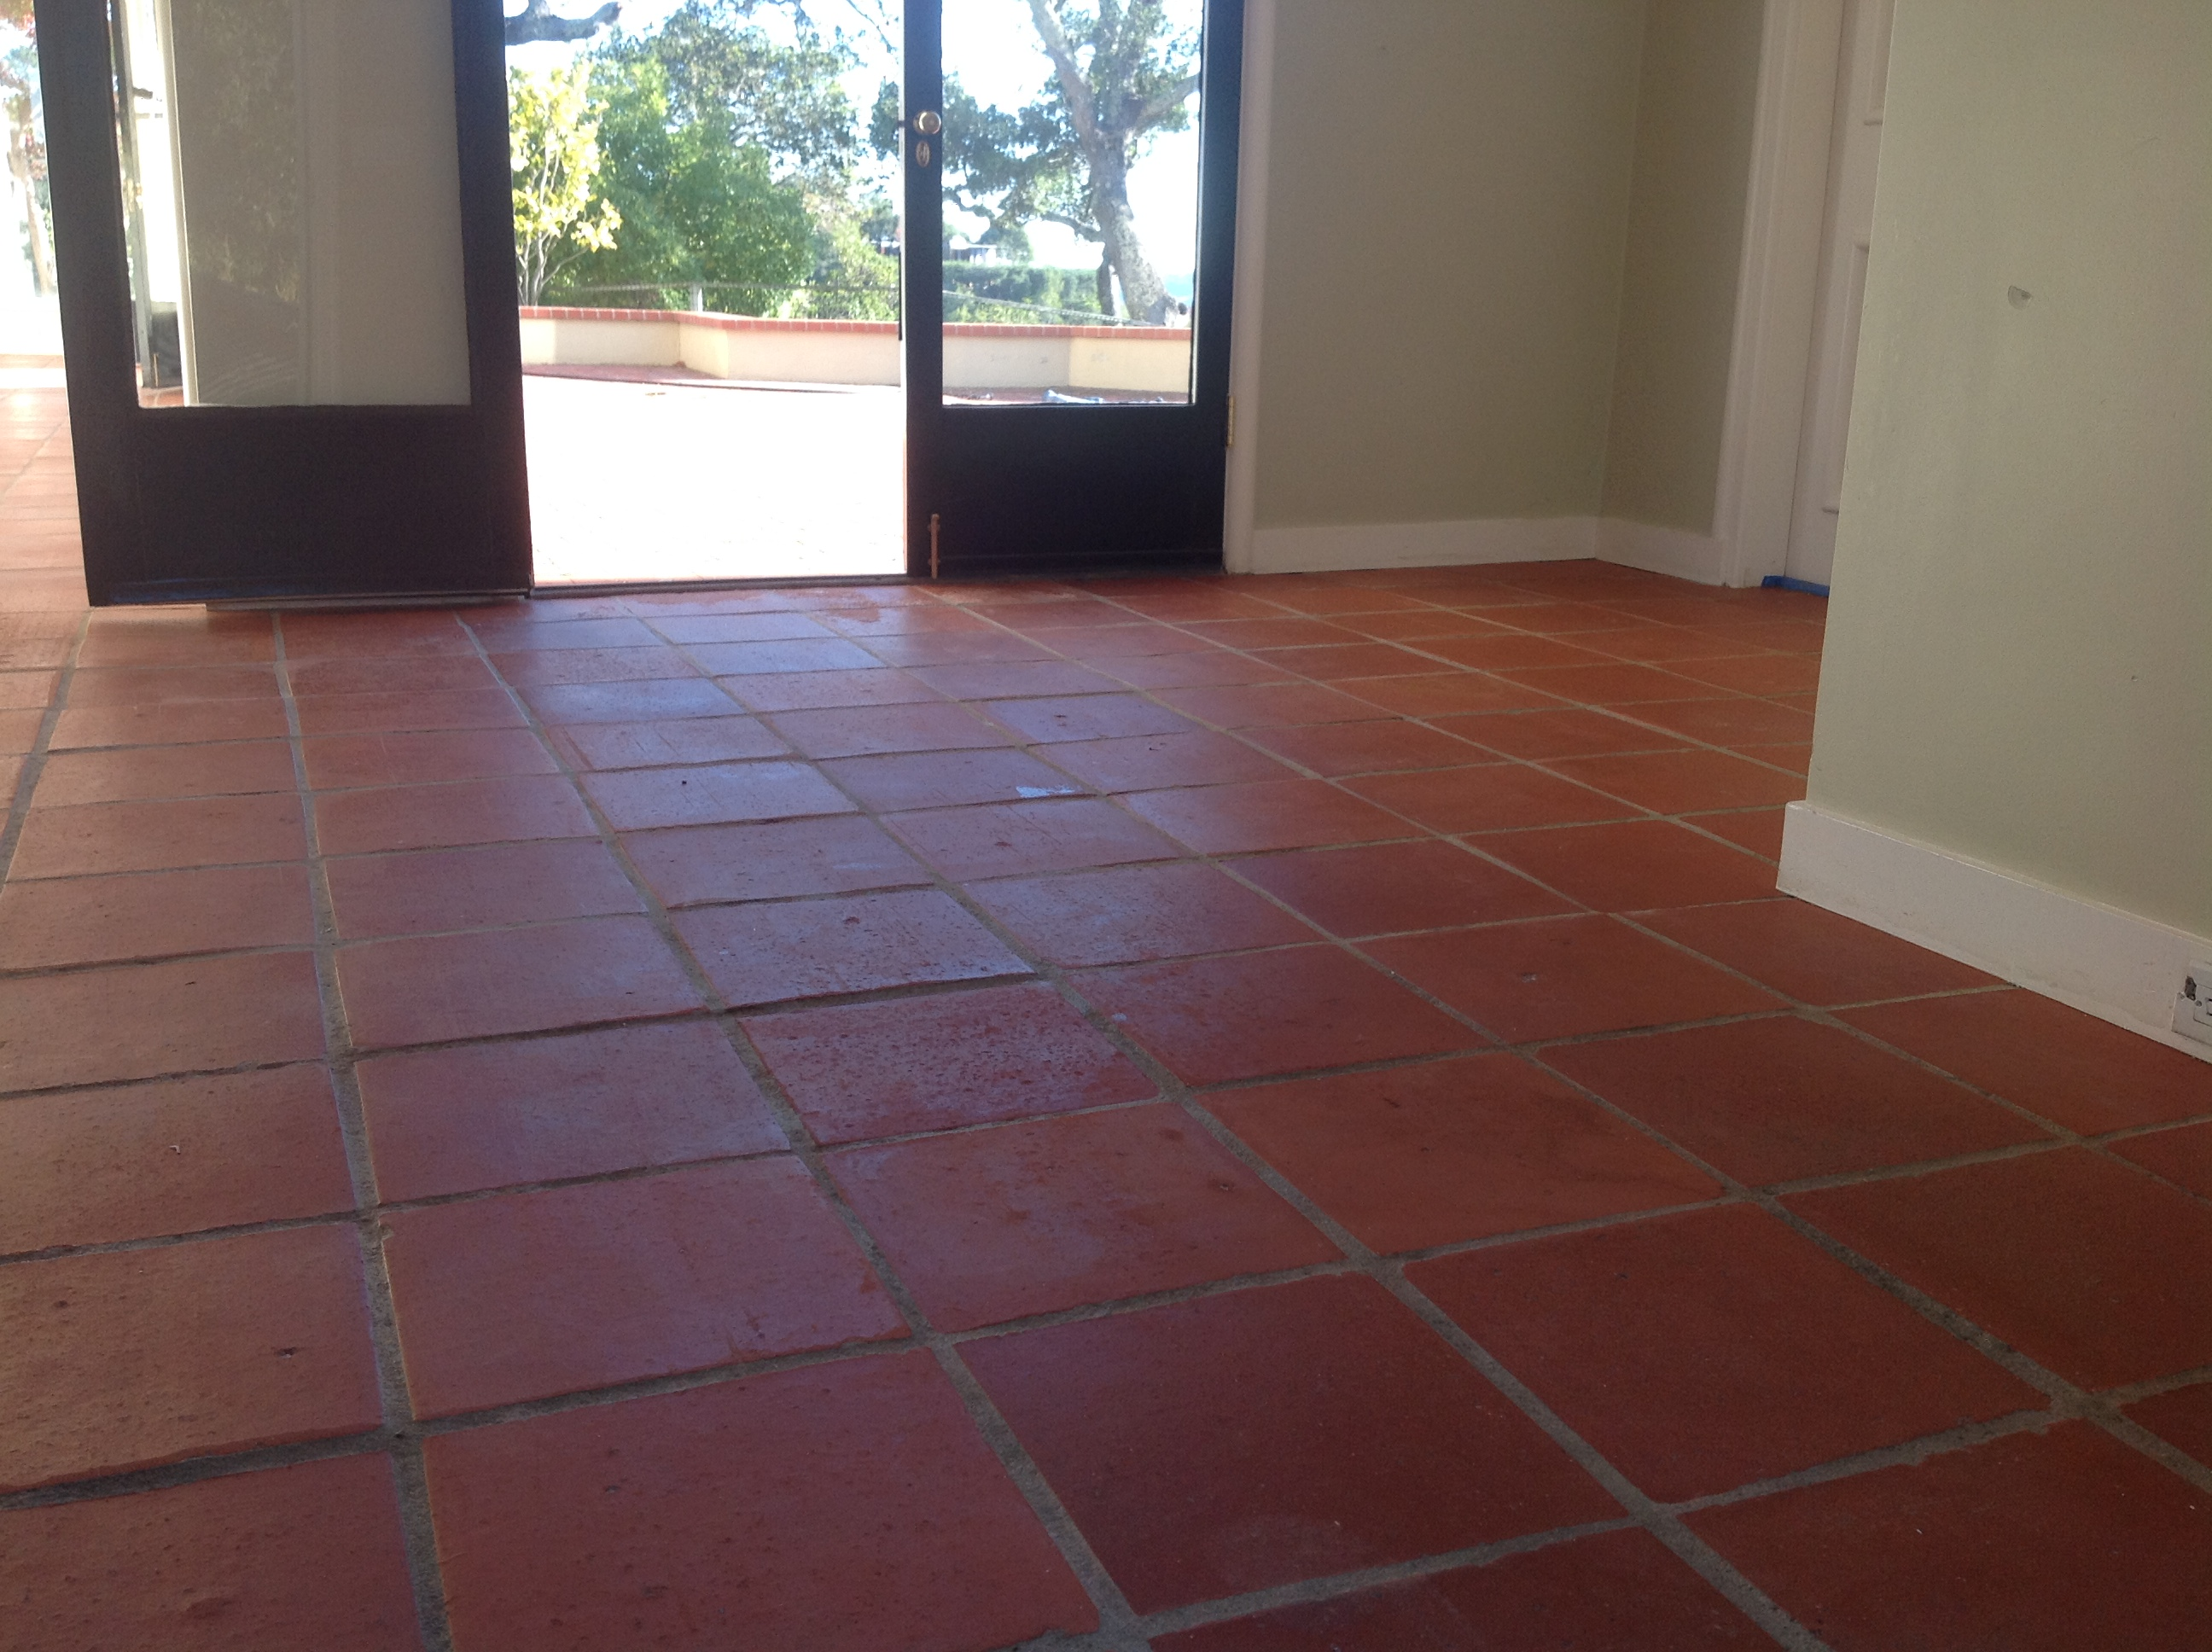 Expert wax removal specialist of all antique pavers mexican some tiles left a greasy film due to some replaced tiles that were a lot more dense like ceramic tile flooring this is where our detailed deep cleaning dailygadgetfo Gallery